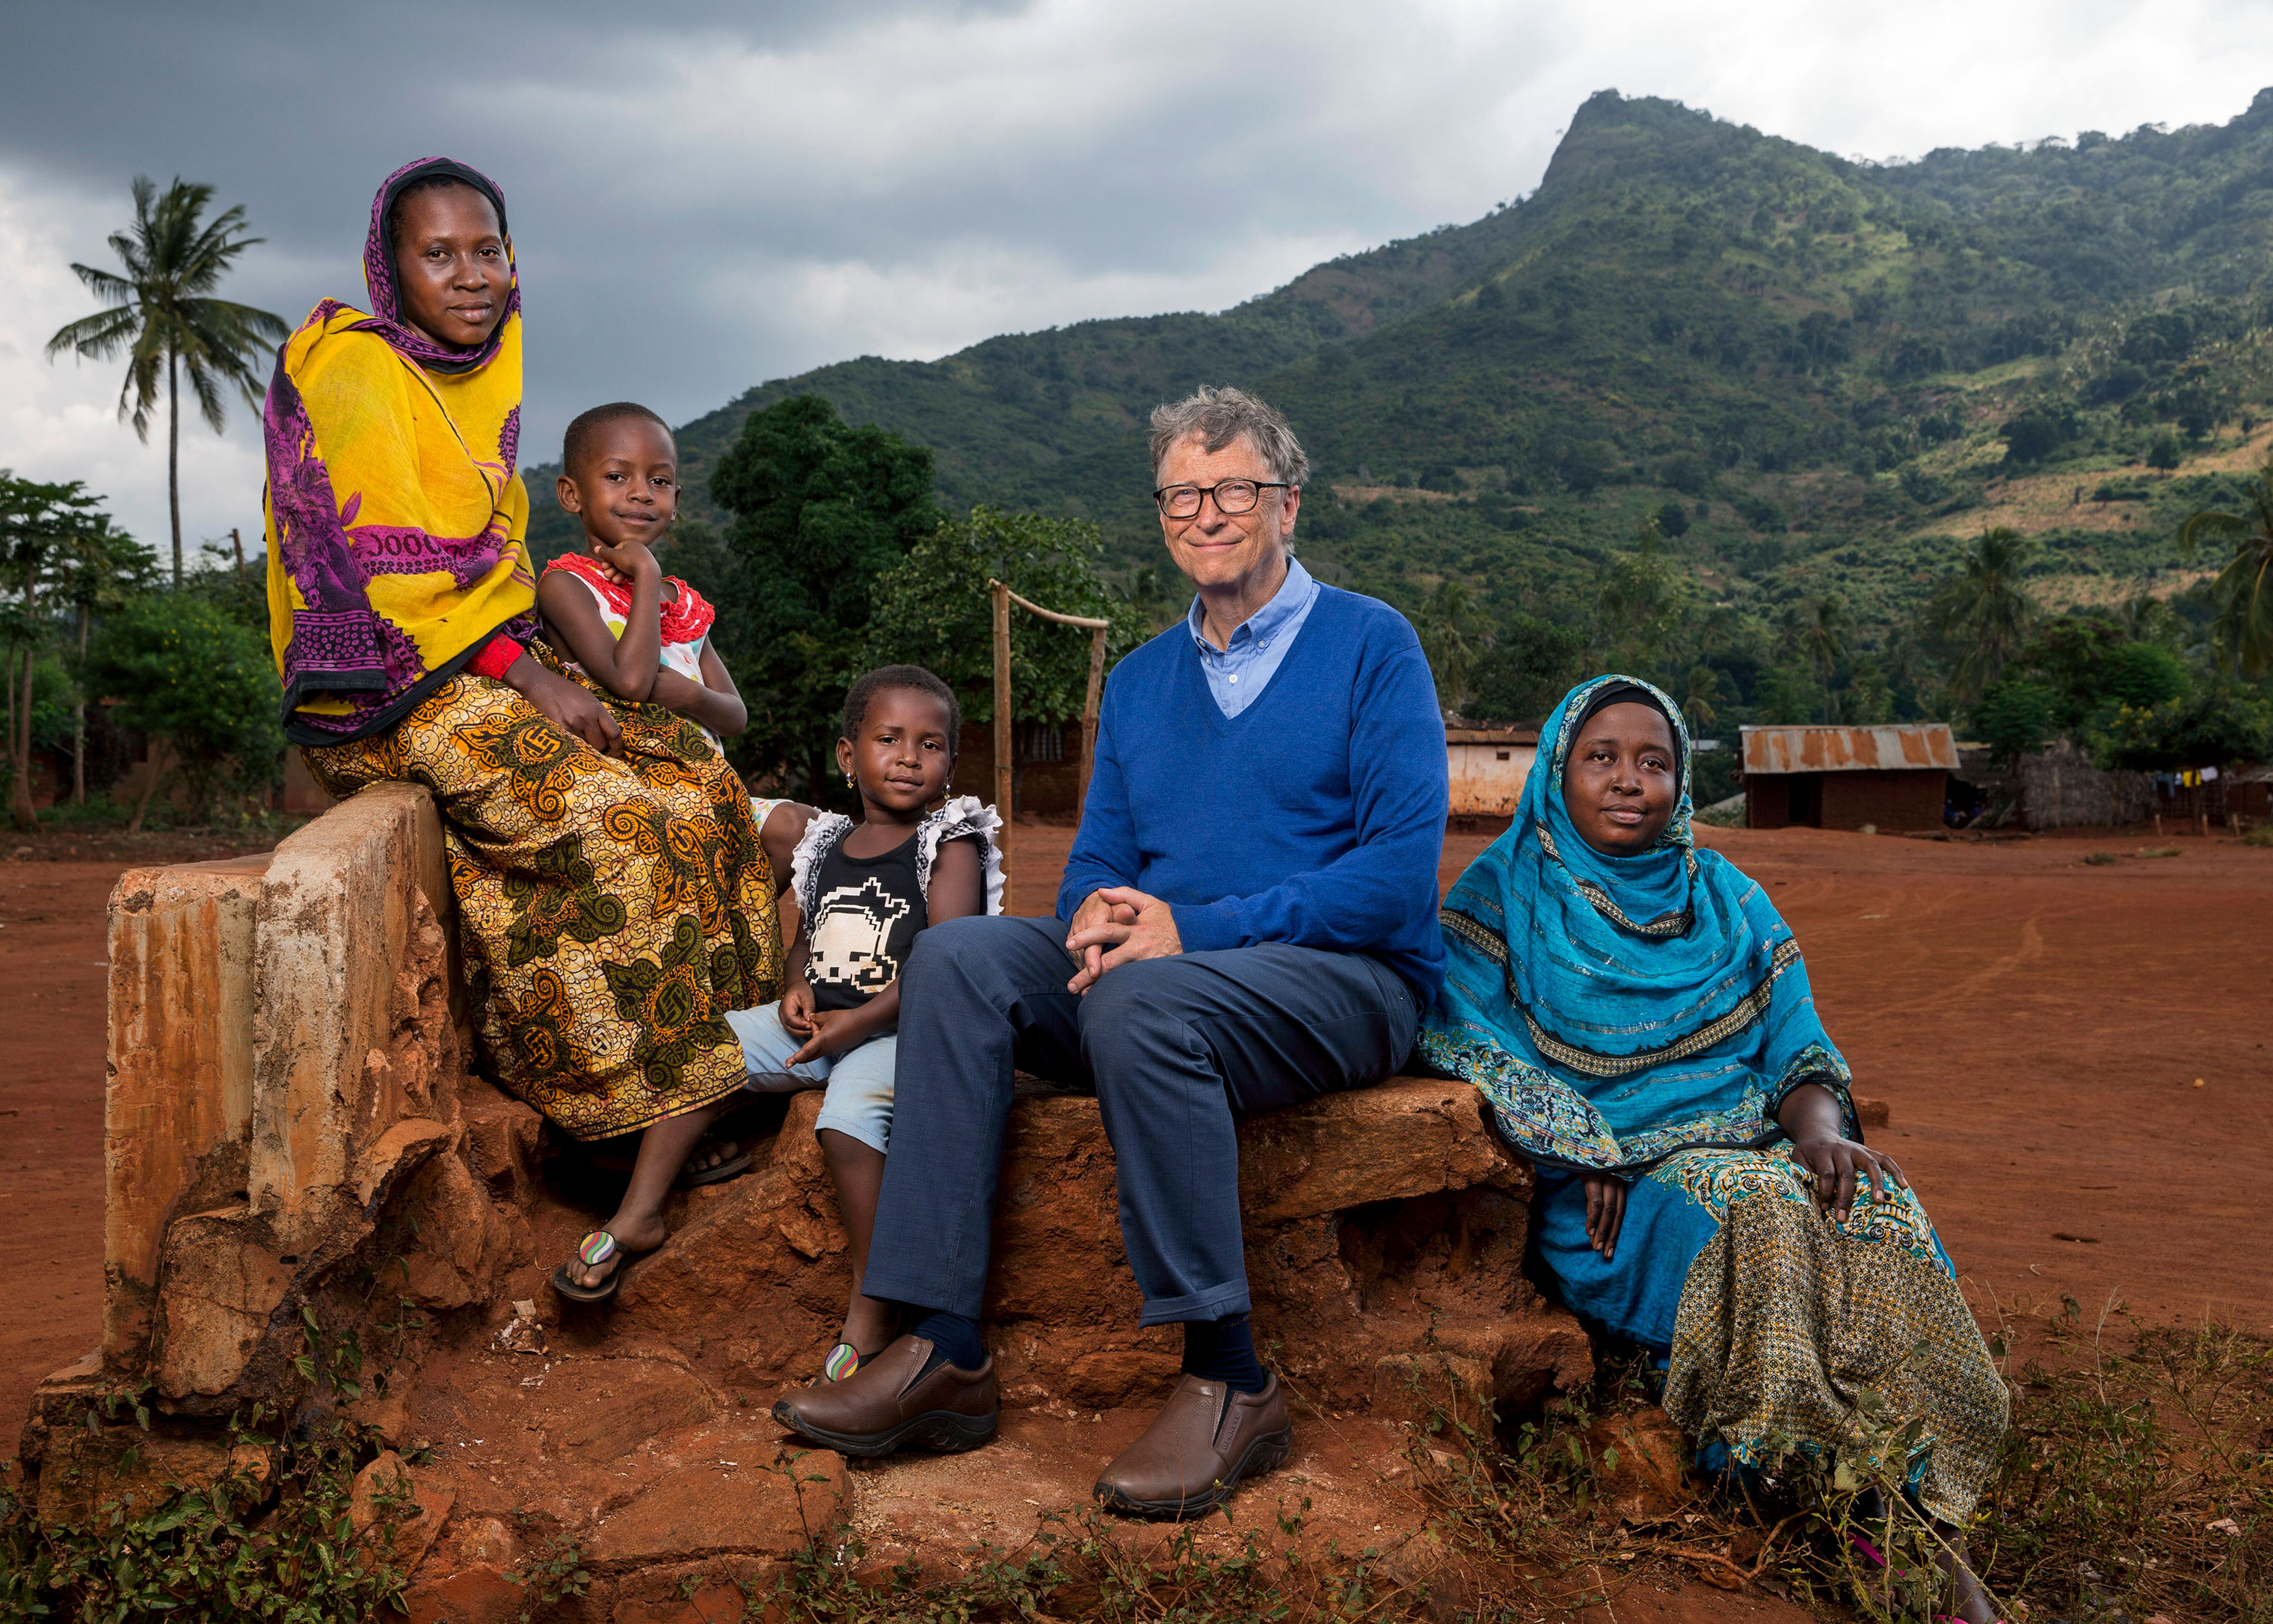 Fadhila Athumani, Salhati Hassani, Hailati Aly, Bill Gates and Asha Athumani in the village of Kicheba in the Tanga Region of Tanzania during an August 2017 visit.